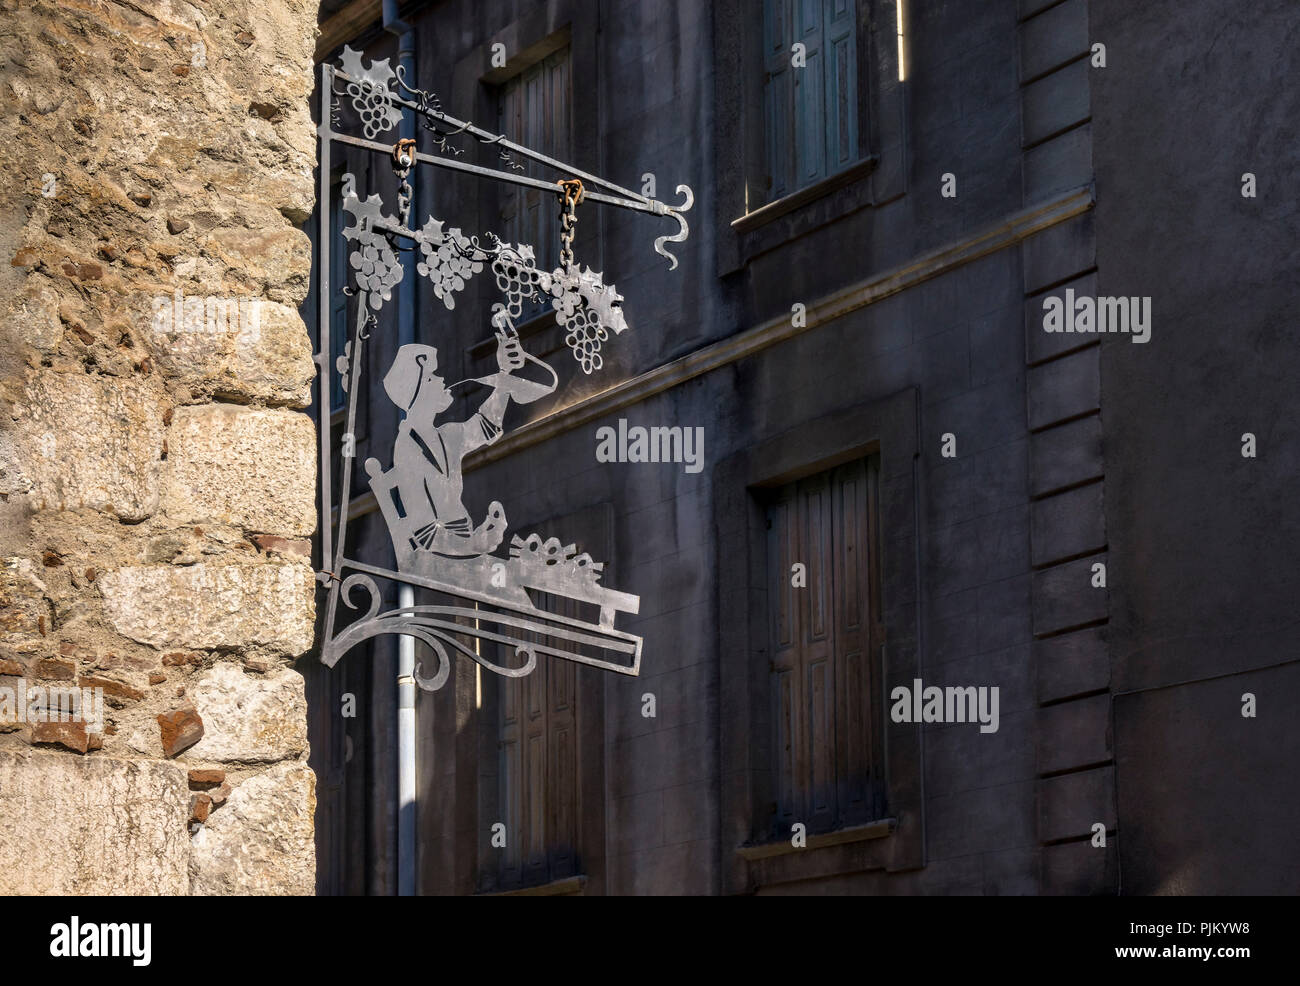 Advertising sign in Villefranche de Conflent, the fortified village is part of the UNESCO World Heritage, plus beaux villes de France, founded in the XI century, - Stock Image